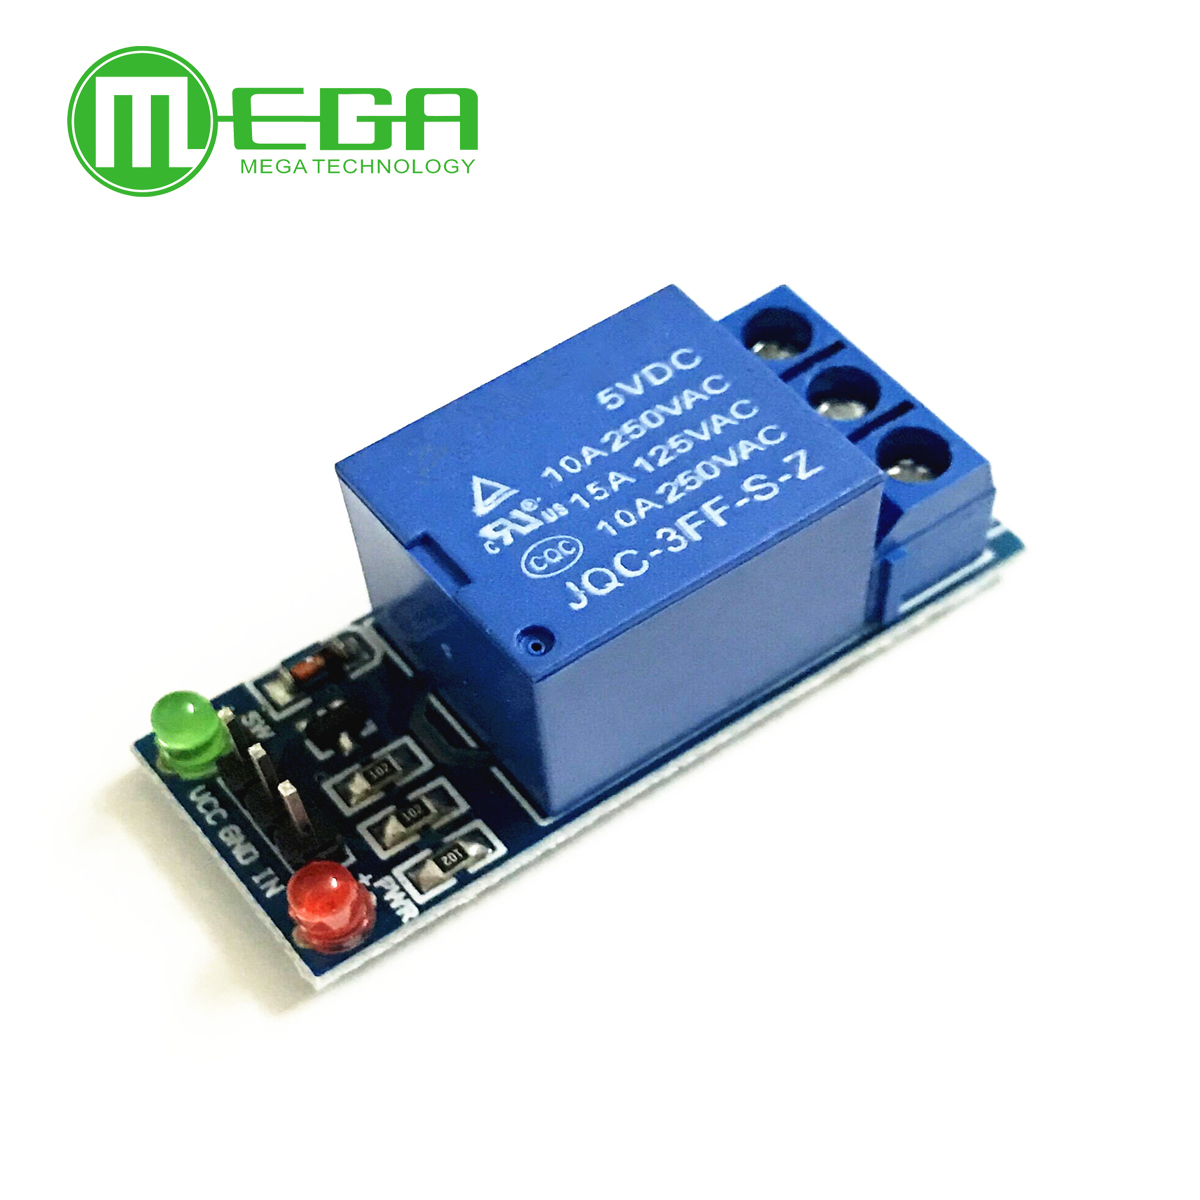 50pcs 1 Channel 5V Relay Module Low level for SCM Household Appliance Control FREE SHIPPING For Arduino